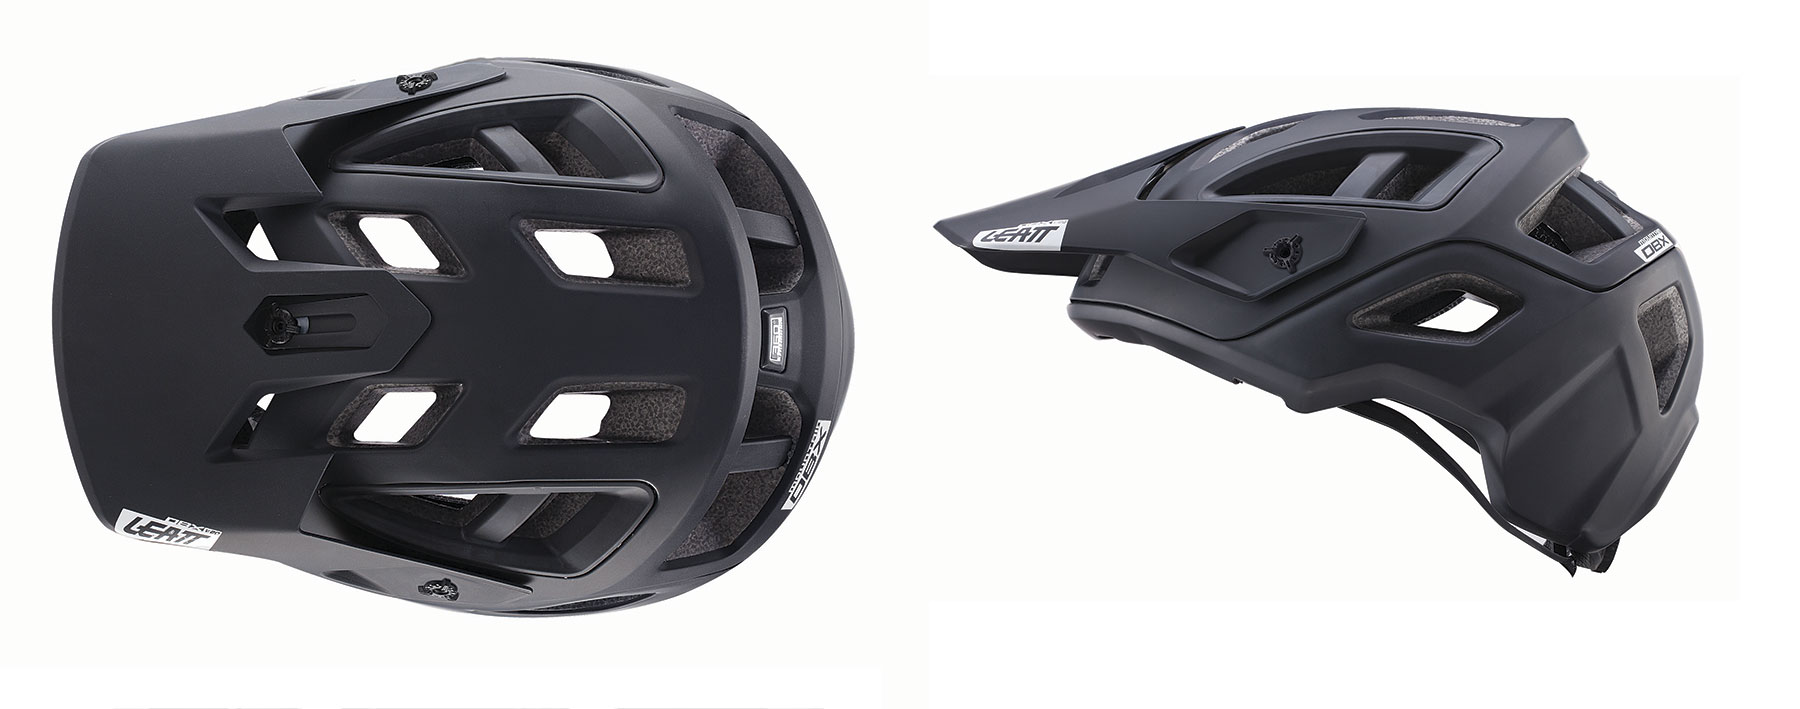 Casco  casco Leatt DBX 3.0 AllMountain - Negro